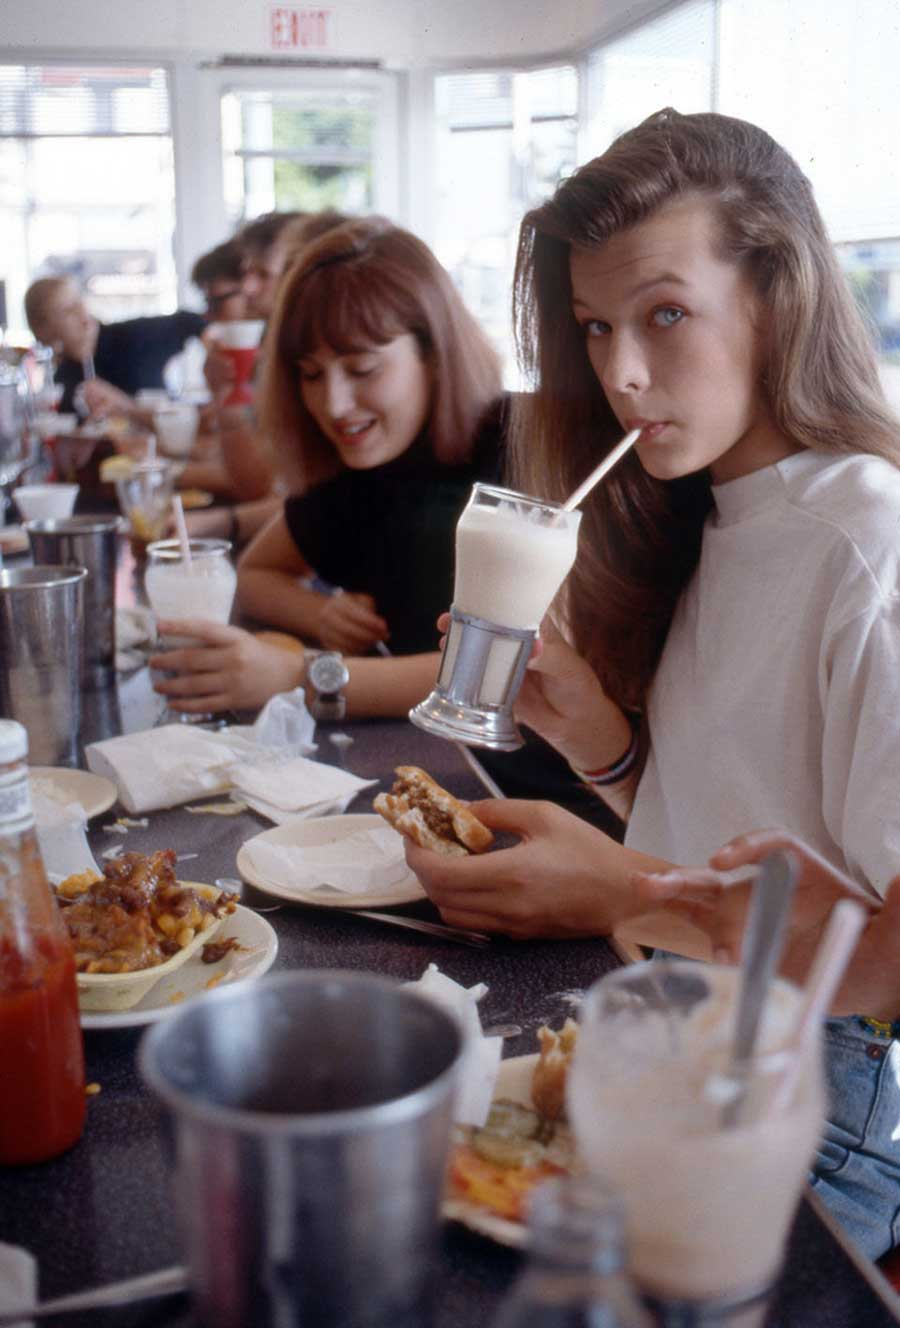 A-young-Milla-Jovovich-having-a-burger-and-milkshake-at-Johnny-Rockets-on-Melrose-in-Hollywood-1987.jpg